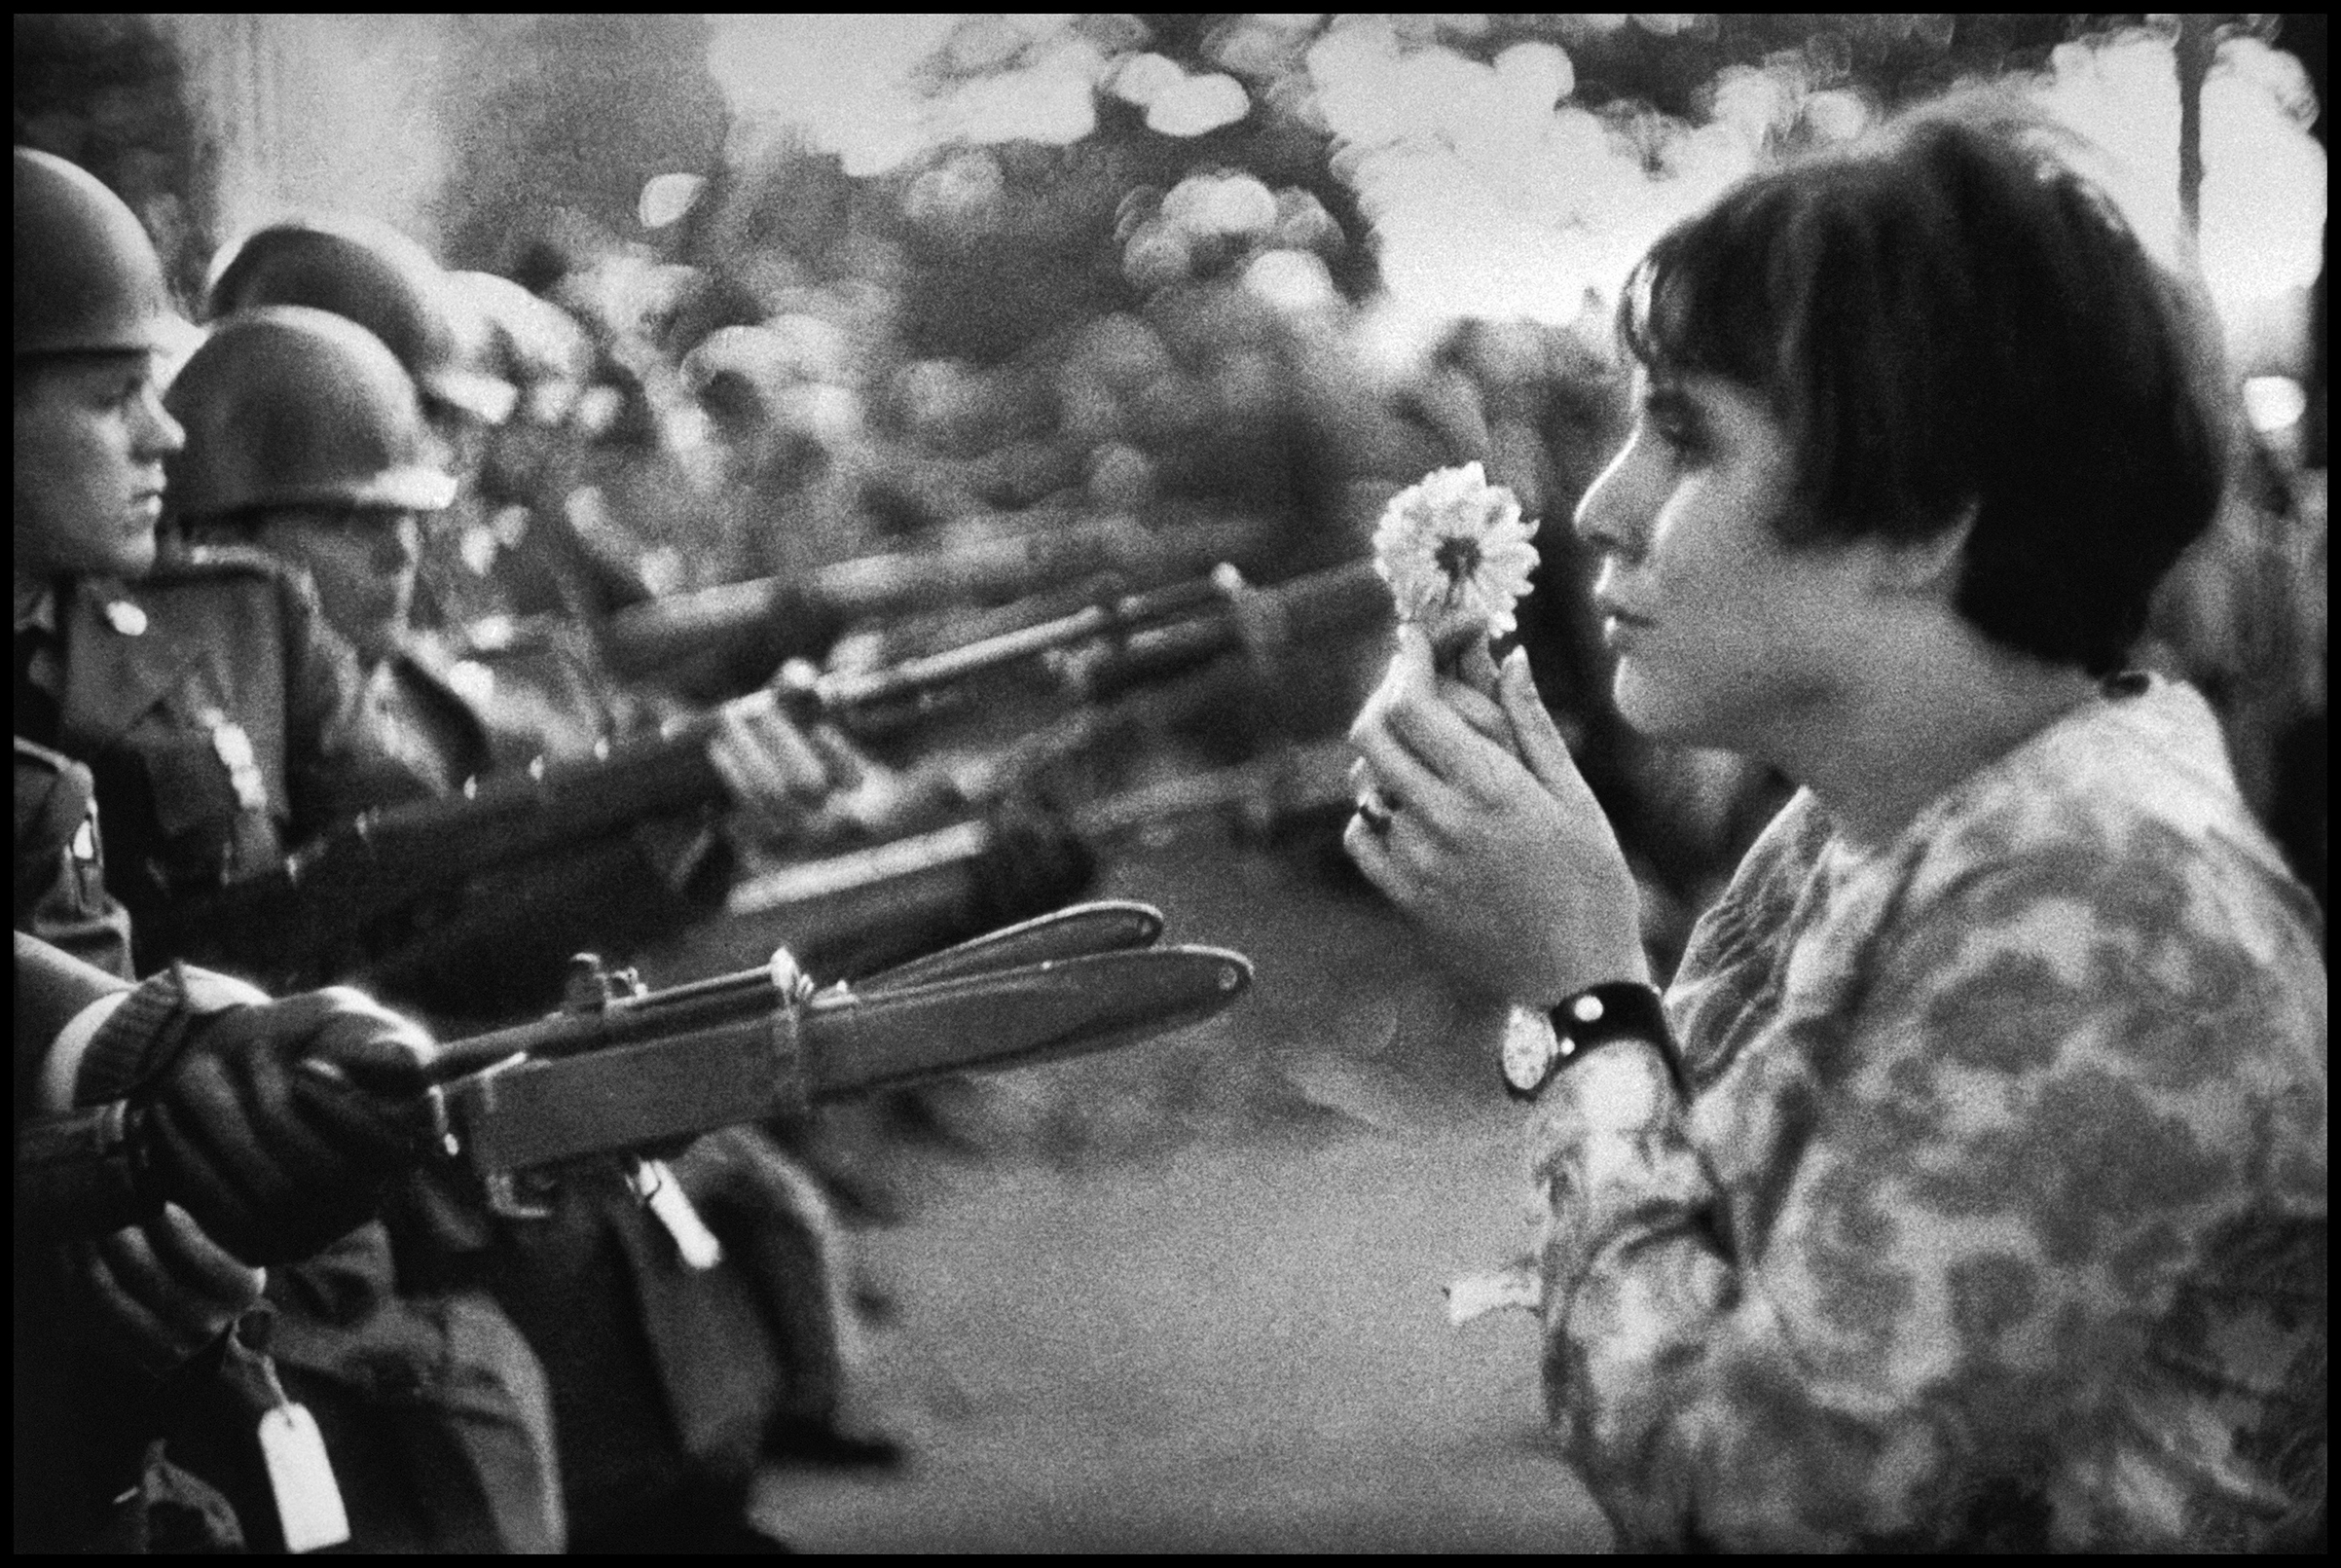 An American young girl, Jan Rose KASMIR, confronts the American National Guard outside the Pentagon during the 1967 anti-Vietnam march. This march helped to turn public opinion against the US war in Vietnam. Washington, D.C., 1967.